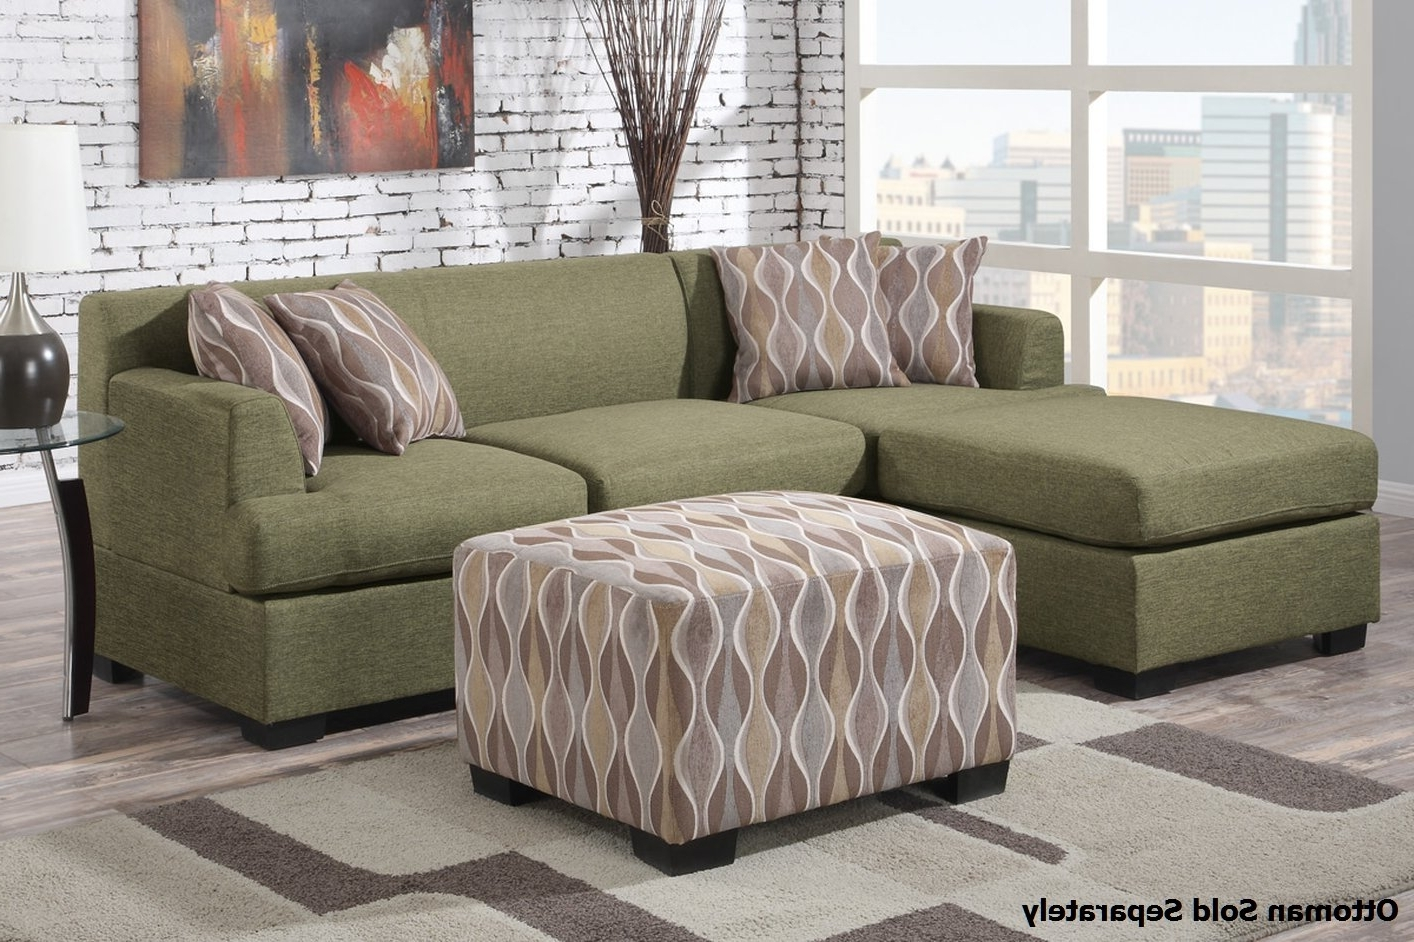 Montreal Ii Green Fabric Sectional Sofa – Steal A Sofa Furniture With Regard To Recent Green Sectional Sofas (View 12 of 20)